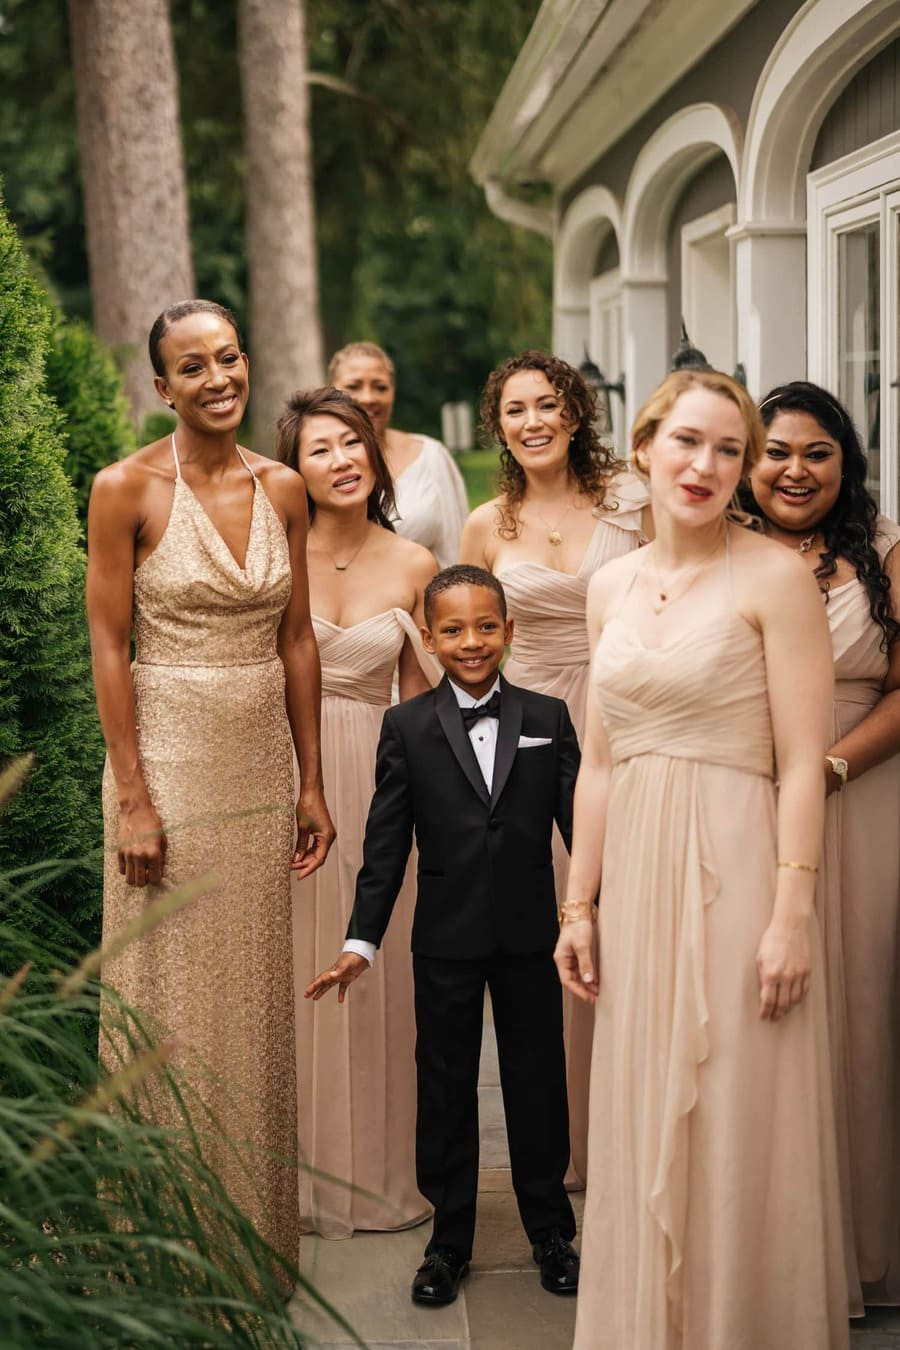 Bridesmaids and nephew of bride admire bride as she shows them her wedding dress.